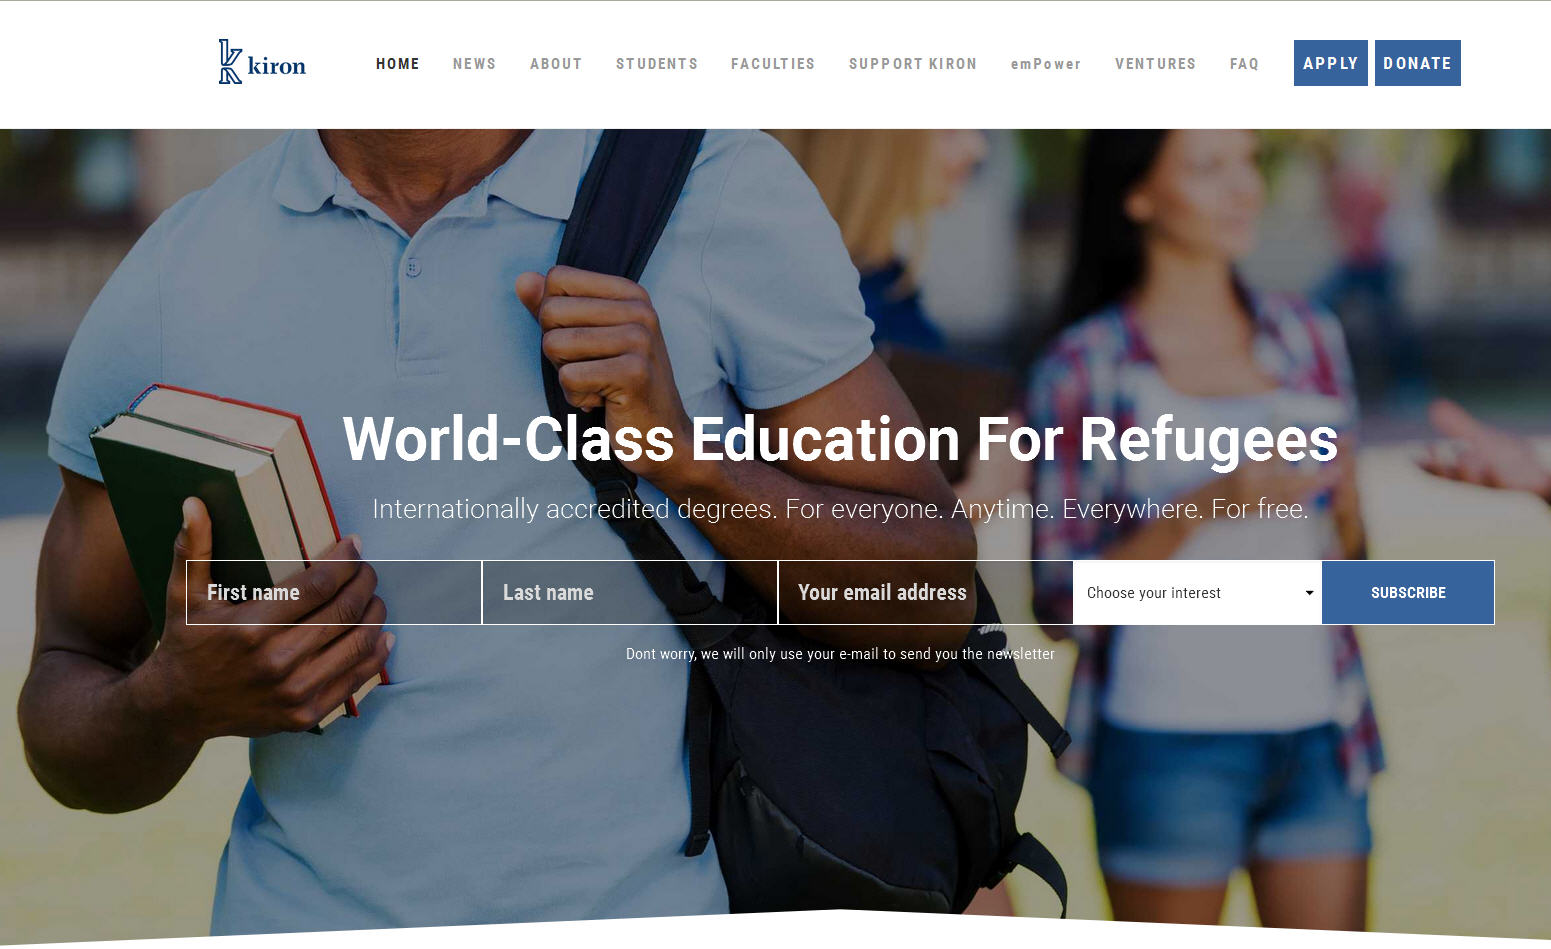 Universities' Response To Refugee Crisis in Europe